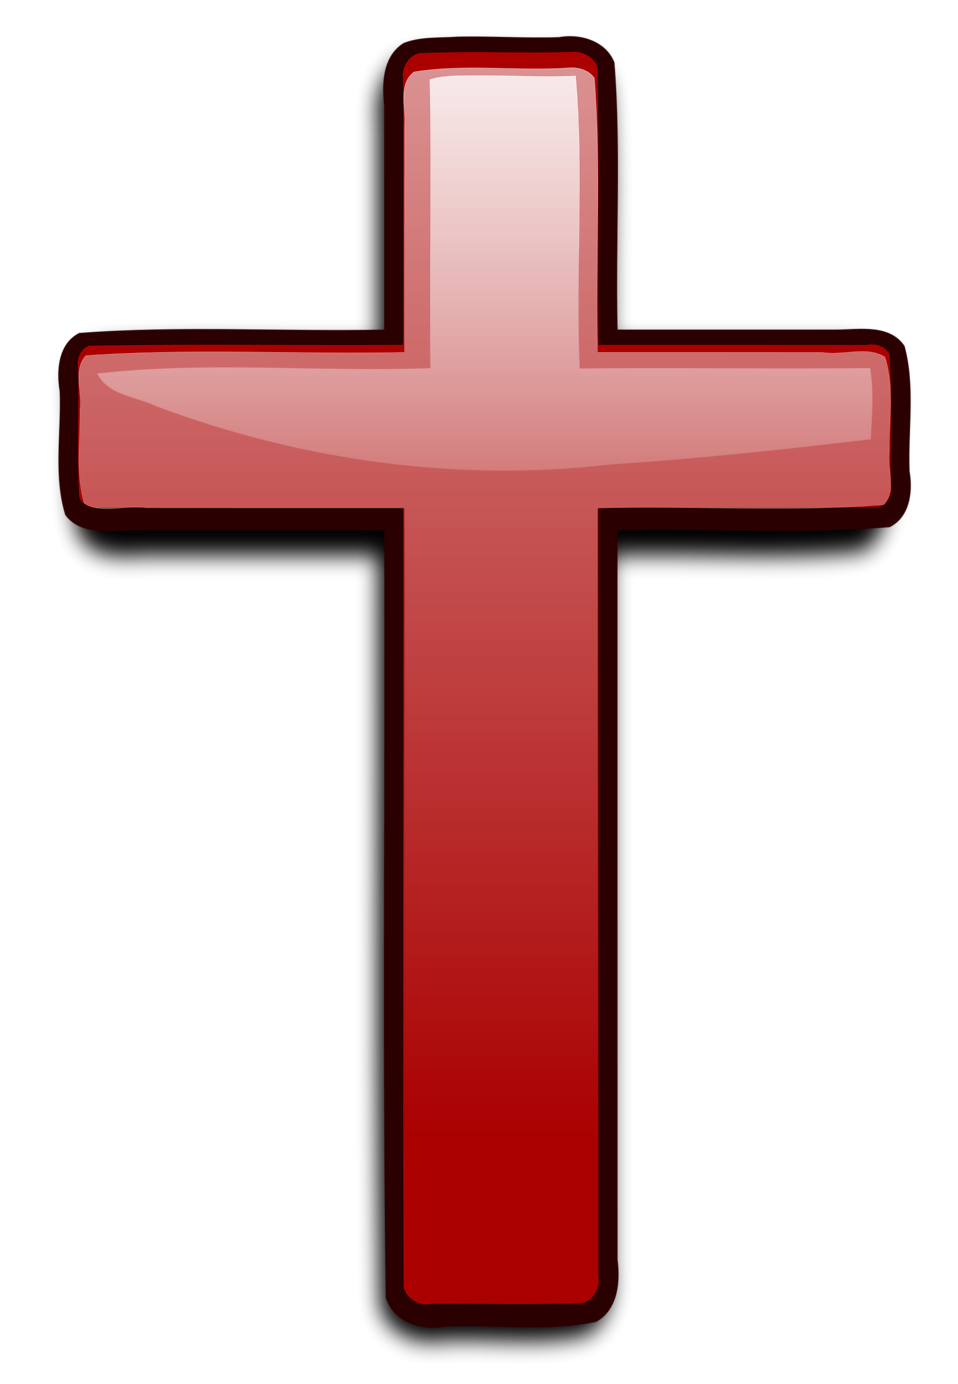 Download Christian Cross File HQ PNG Image | FreePNGImg image library stock